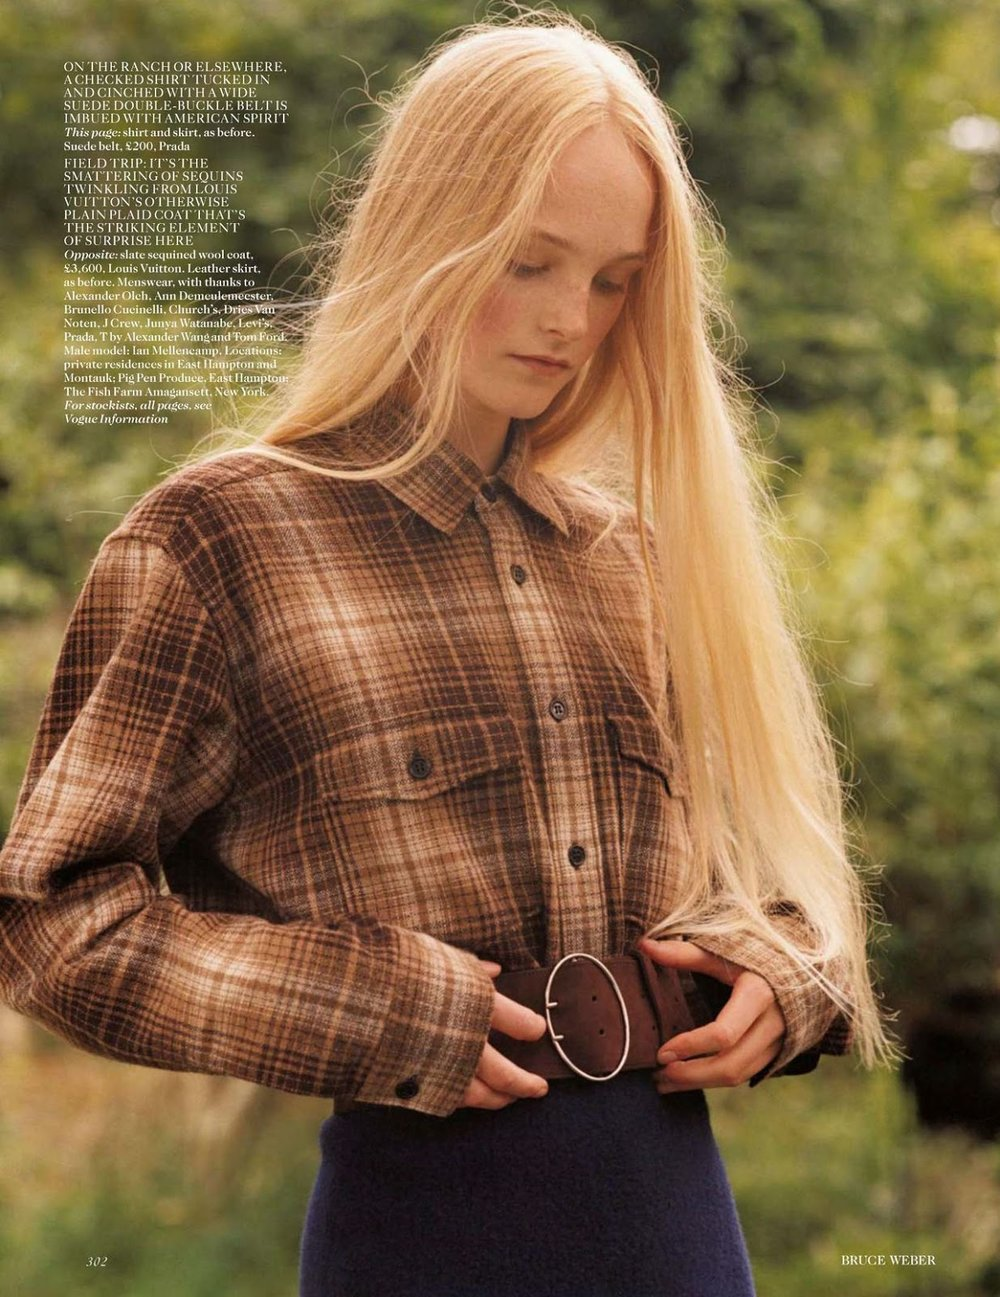 meet me in montauk jean campbell bruce weber joe mckenna vogue uk, october 2013 17.jpg